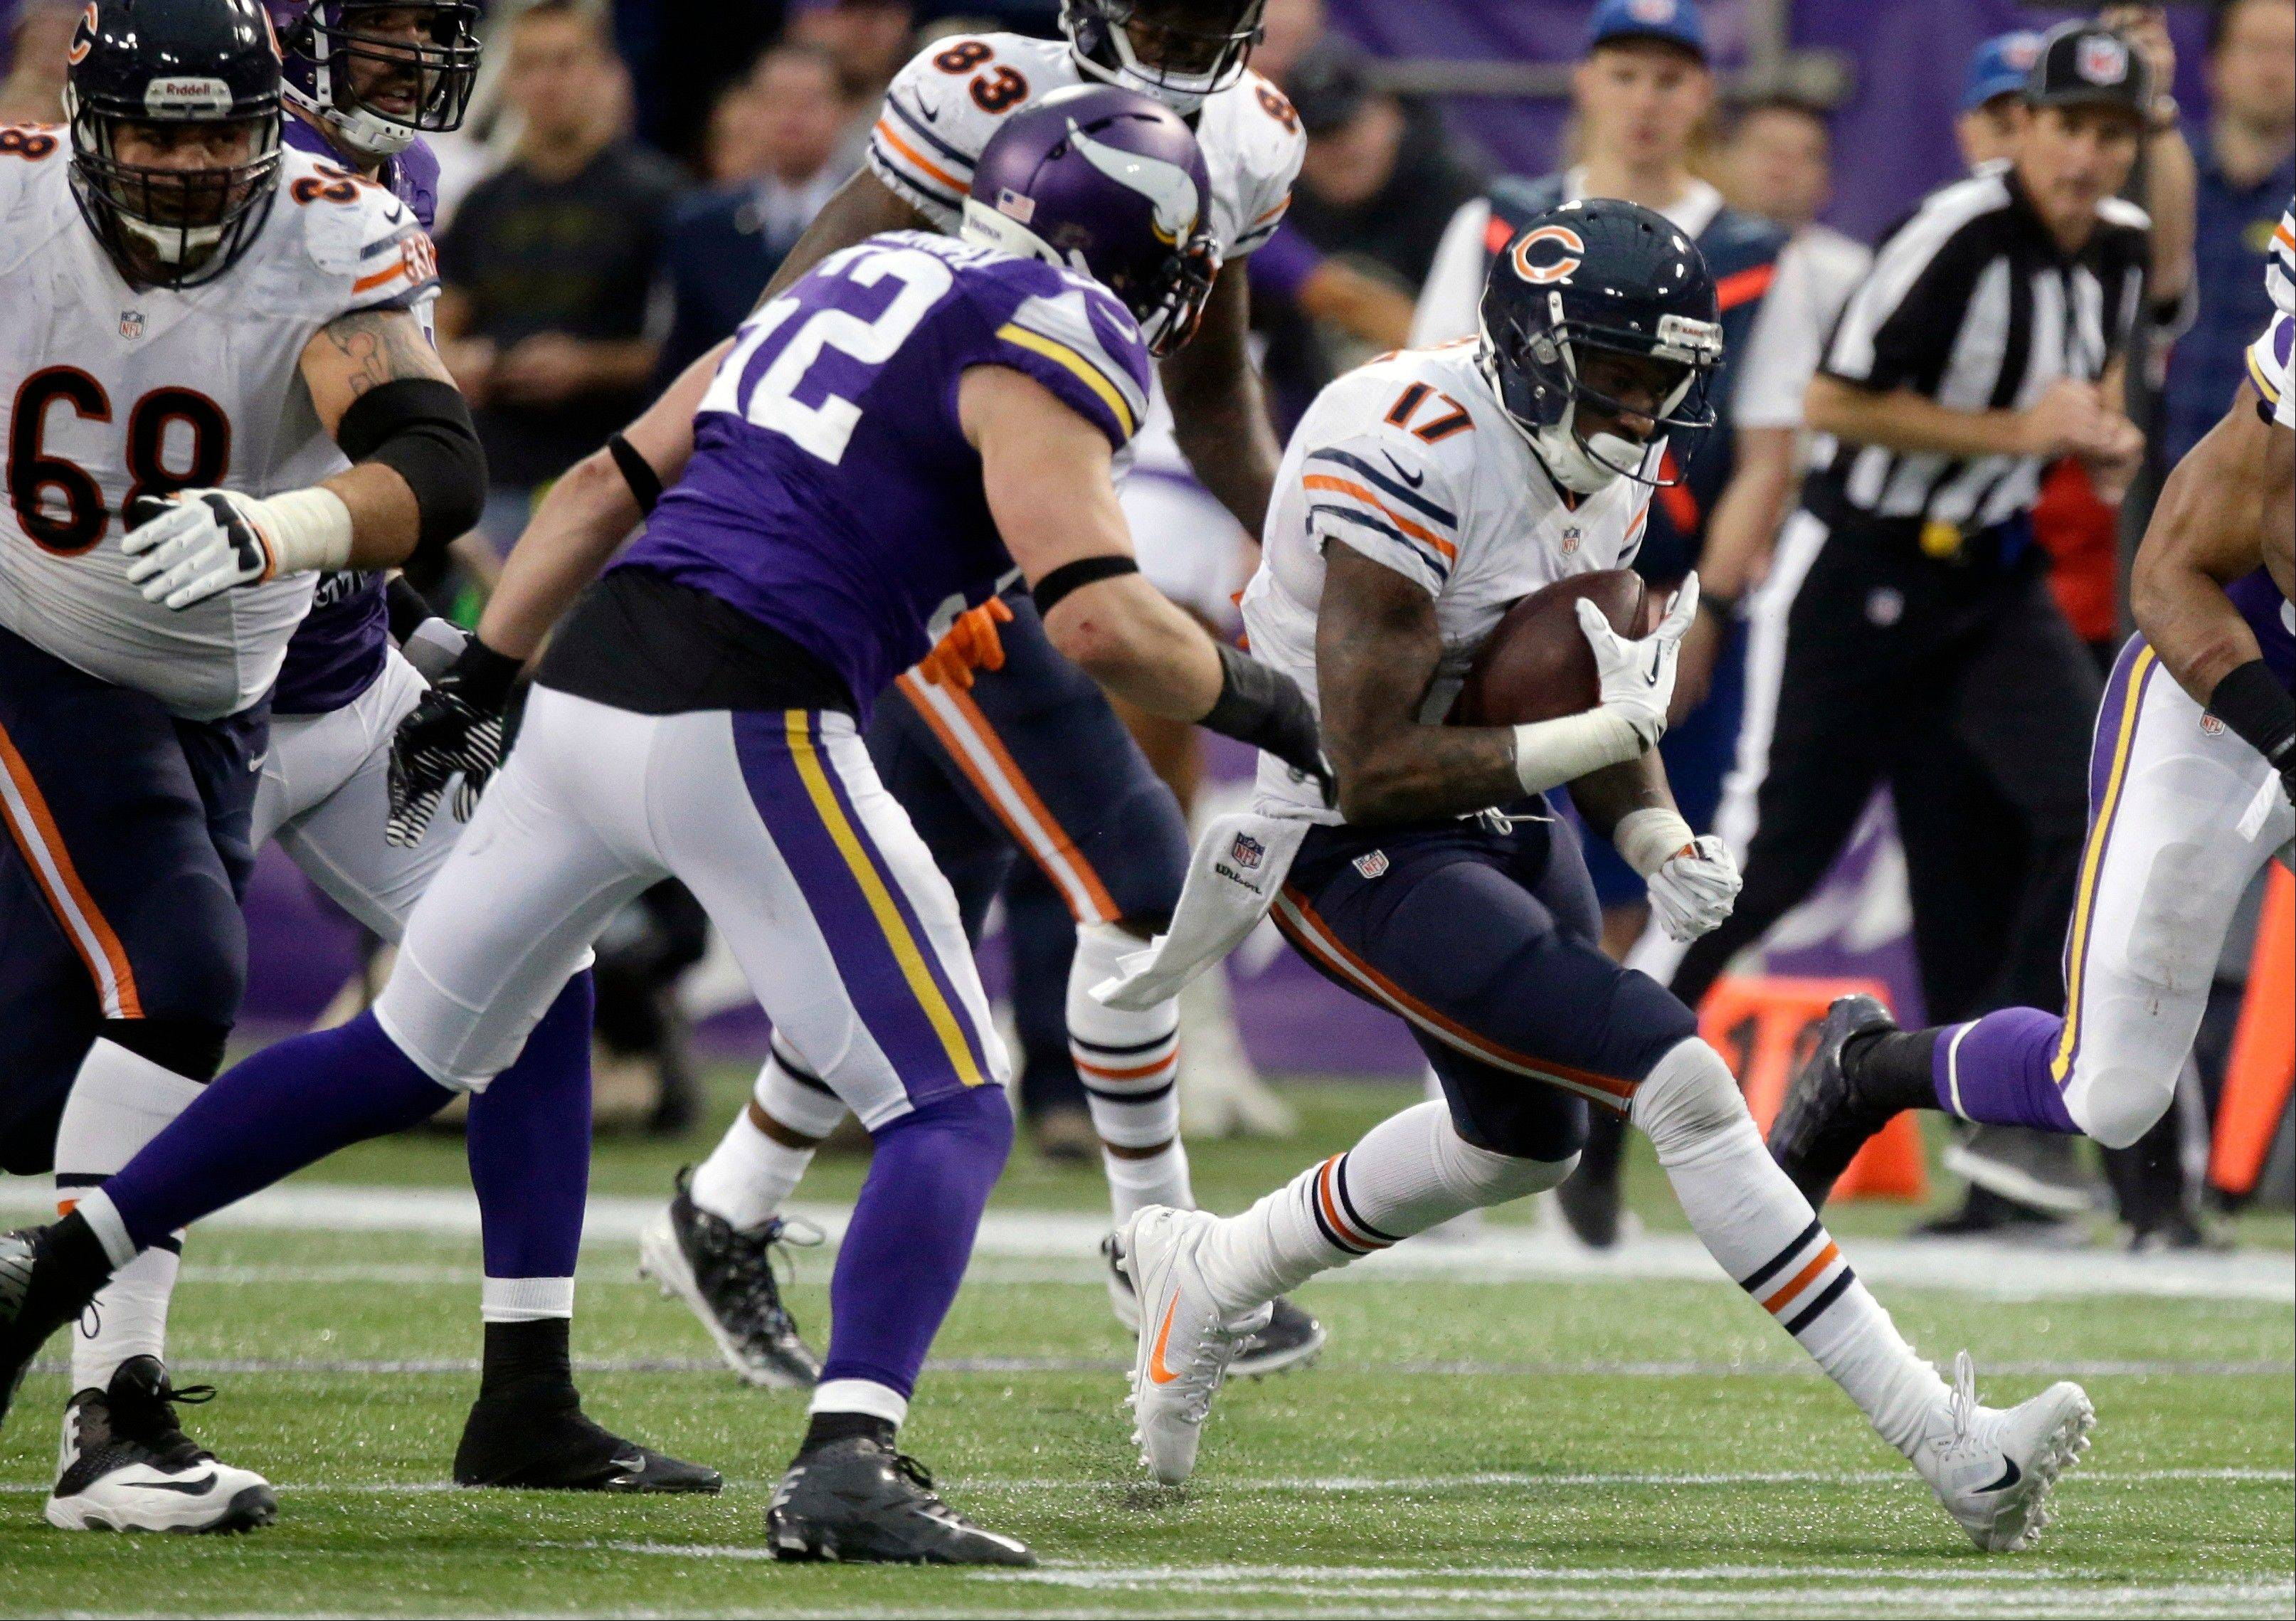 Chicago Bears wide receiver Alshon Jeffery (17) runs from Minnesota Vikings outside linebacker Chad Greenway, left, after making a reception during the second half.